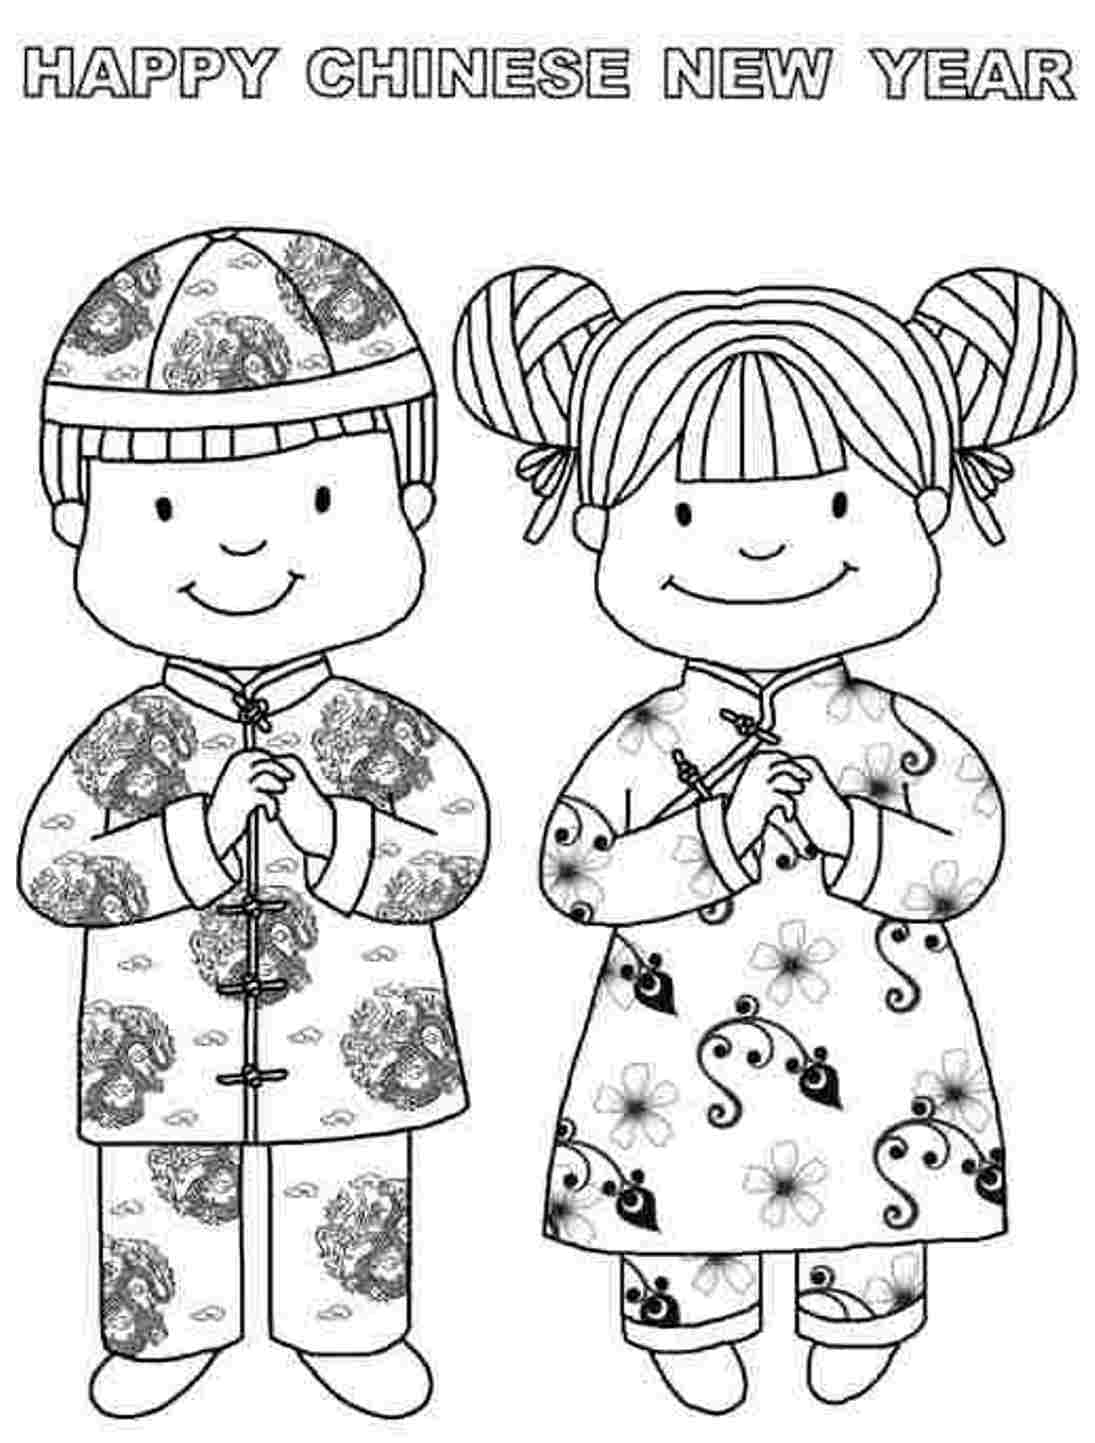 Chinese New Years Day Coloring Pages 15printablecoloring Pages